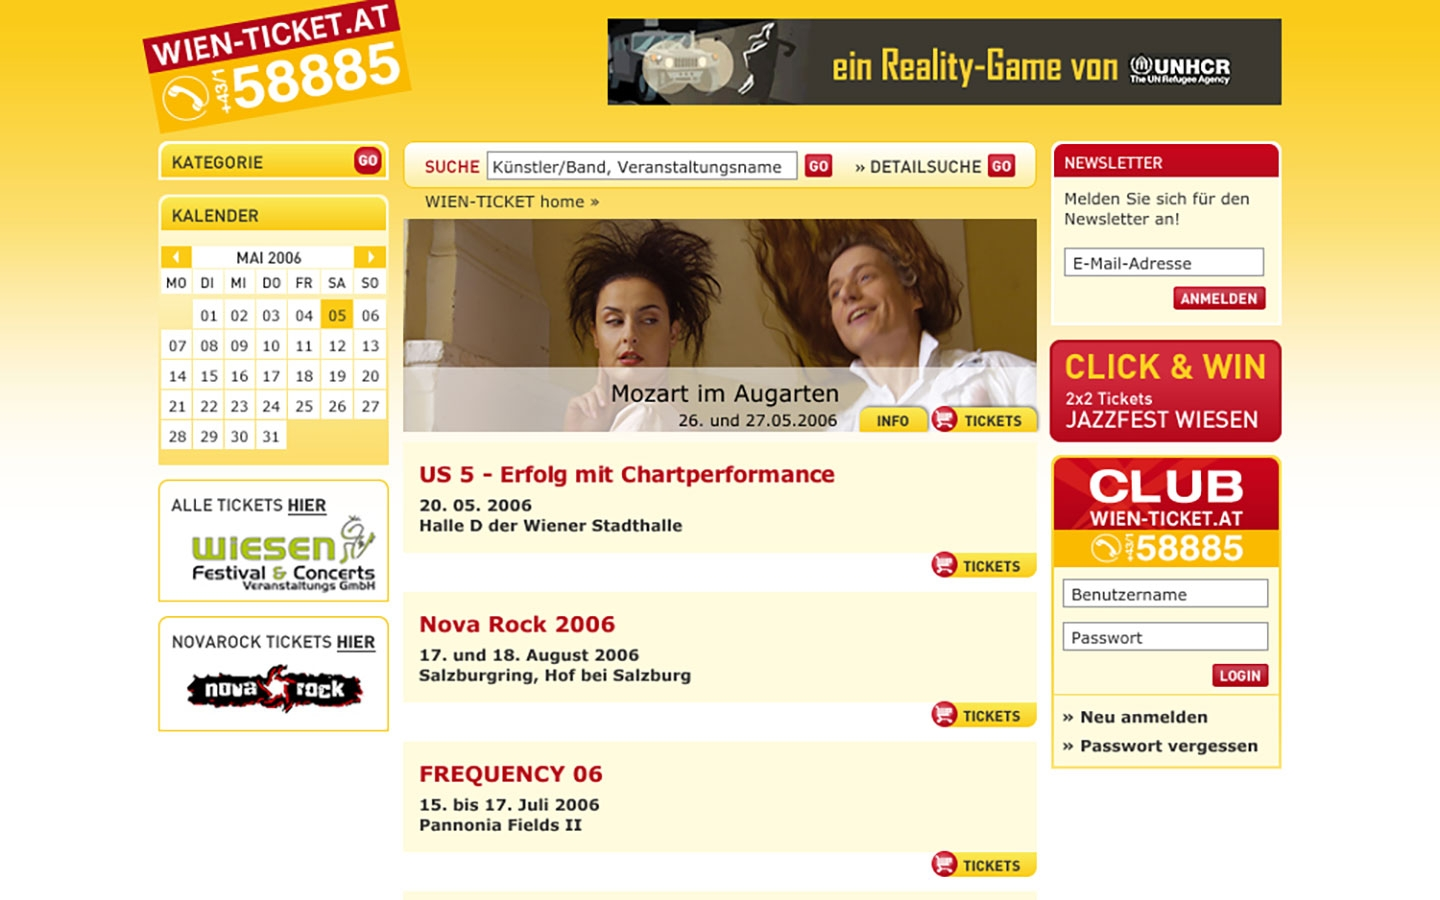 Wien Ticket | wien-ticket.at | 2006 (Screen Only 03) © echonet communication